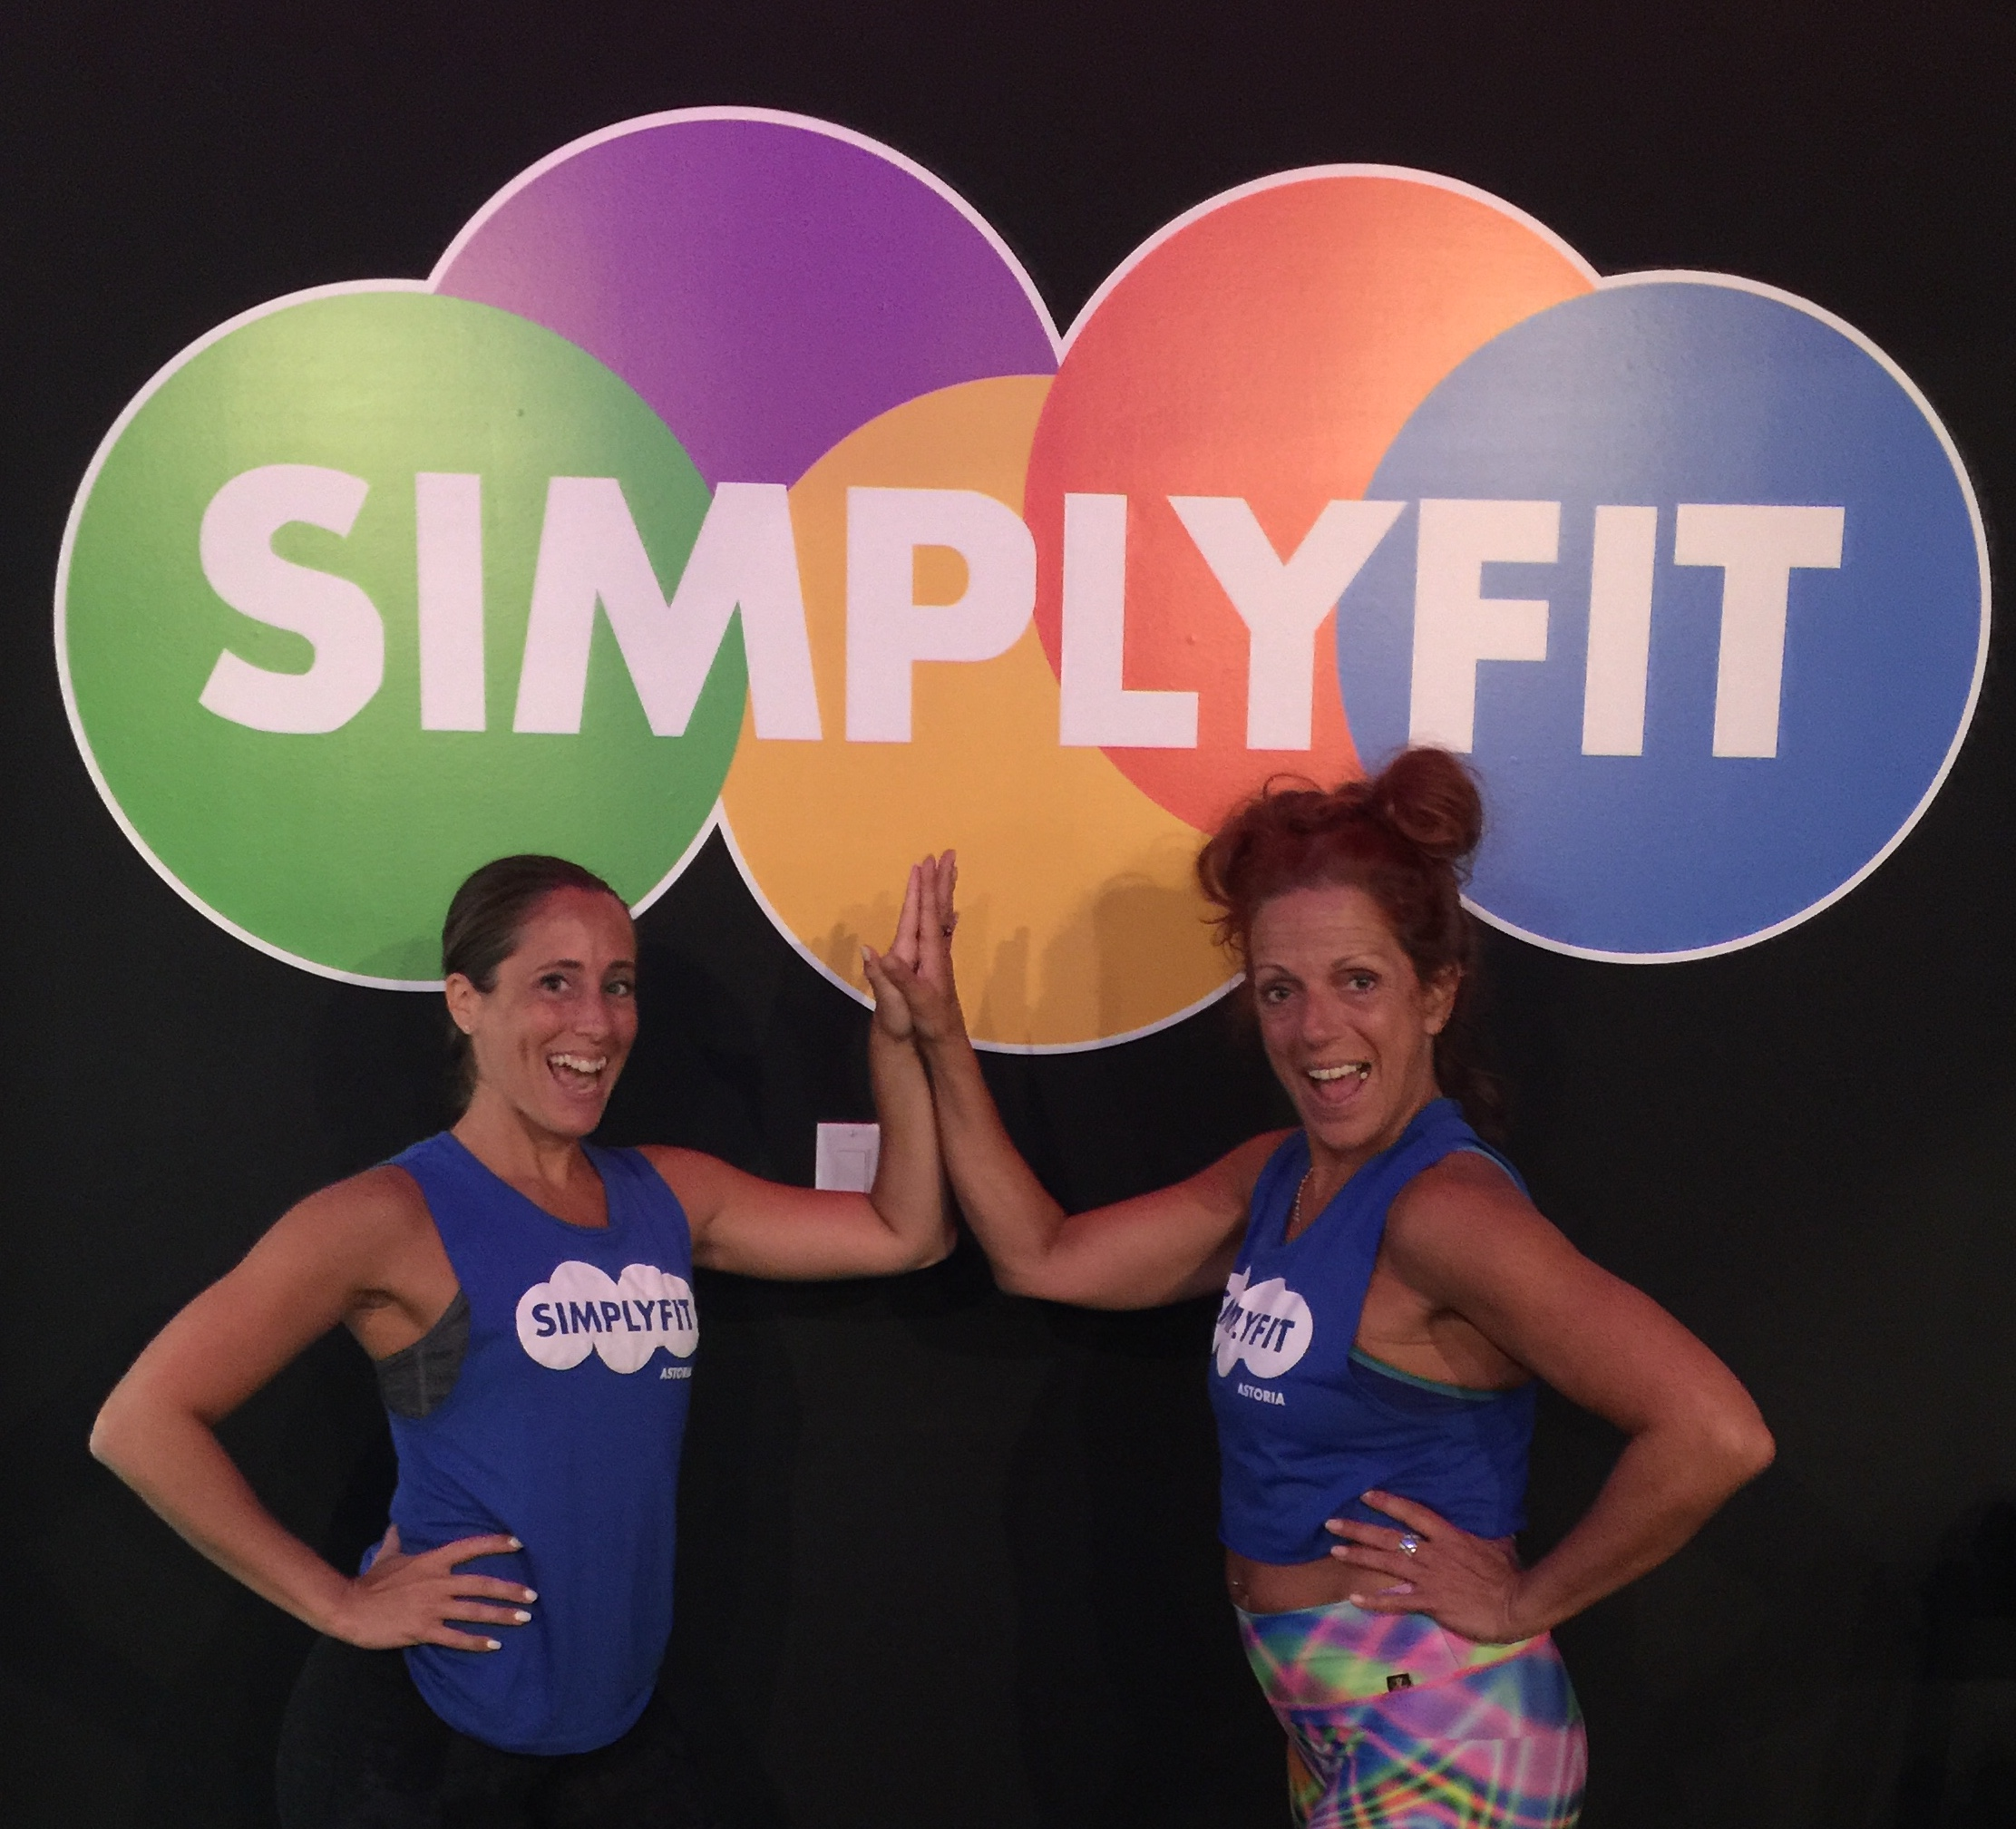 Work on the new you today - Simply Fit Astoria is a multi discipline boutique fitness facility located in the heart of Astoria, NY. Featuring 3 separate studio spaces within the same facility, Simply Fit, Simply Cycle & Simply Training, we have exactly what you need to work on YOU!Learn more ➝